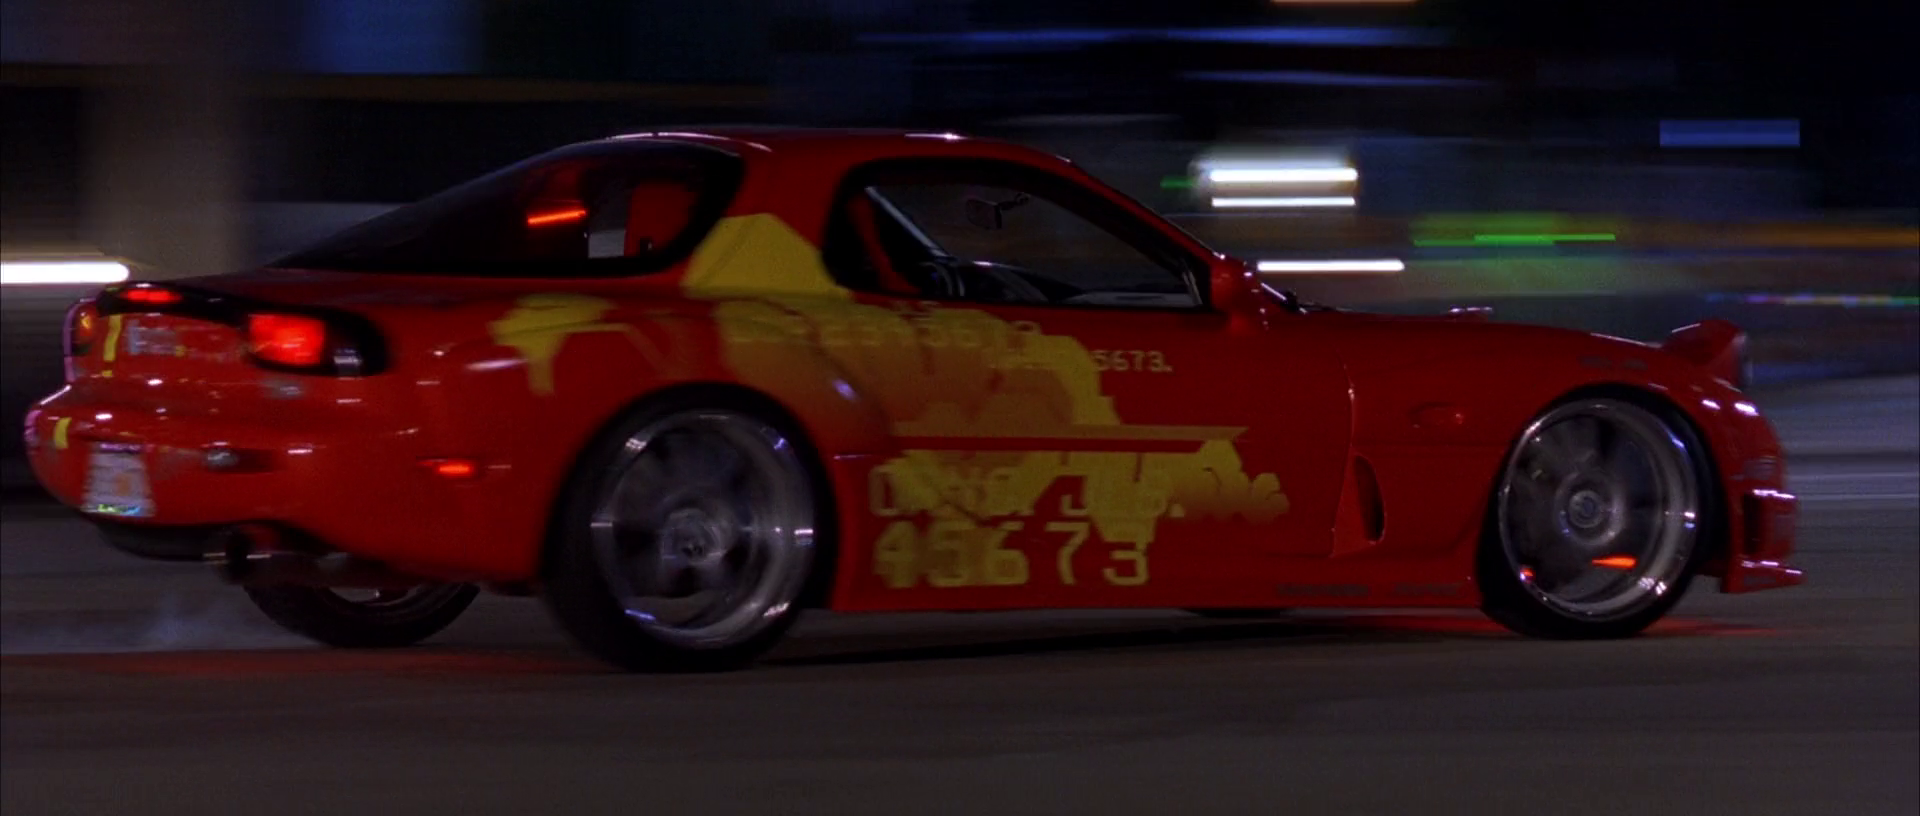 1993 Mazda RX-7 (Orange Julius) | The Fast and the Furious Wiki ...